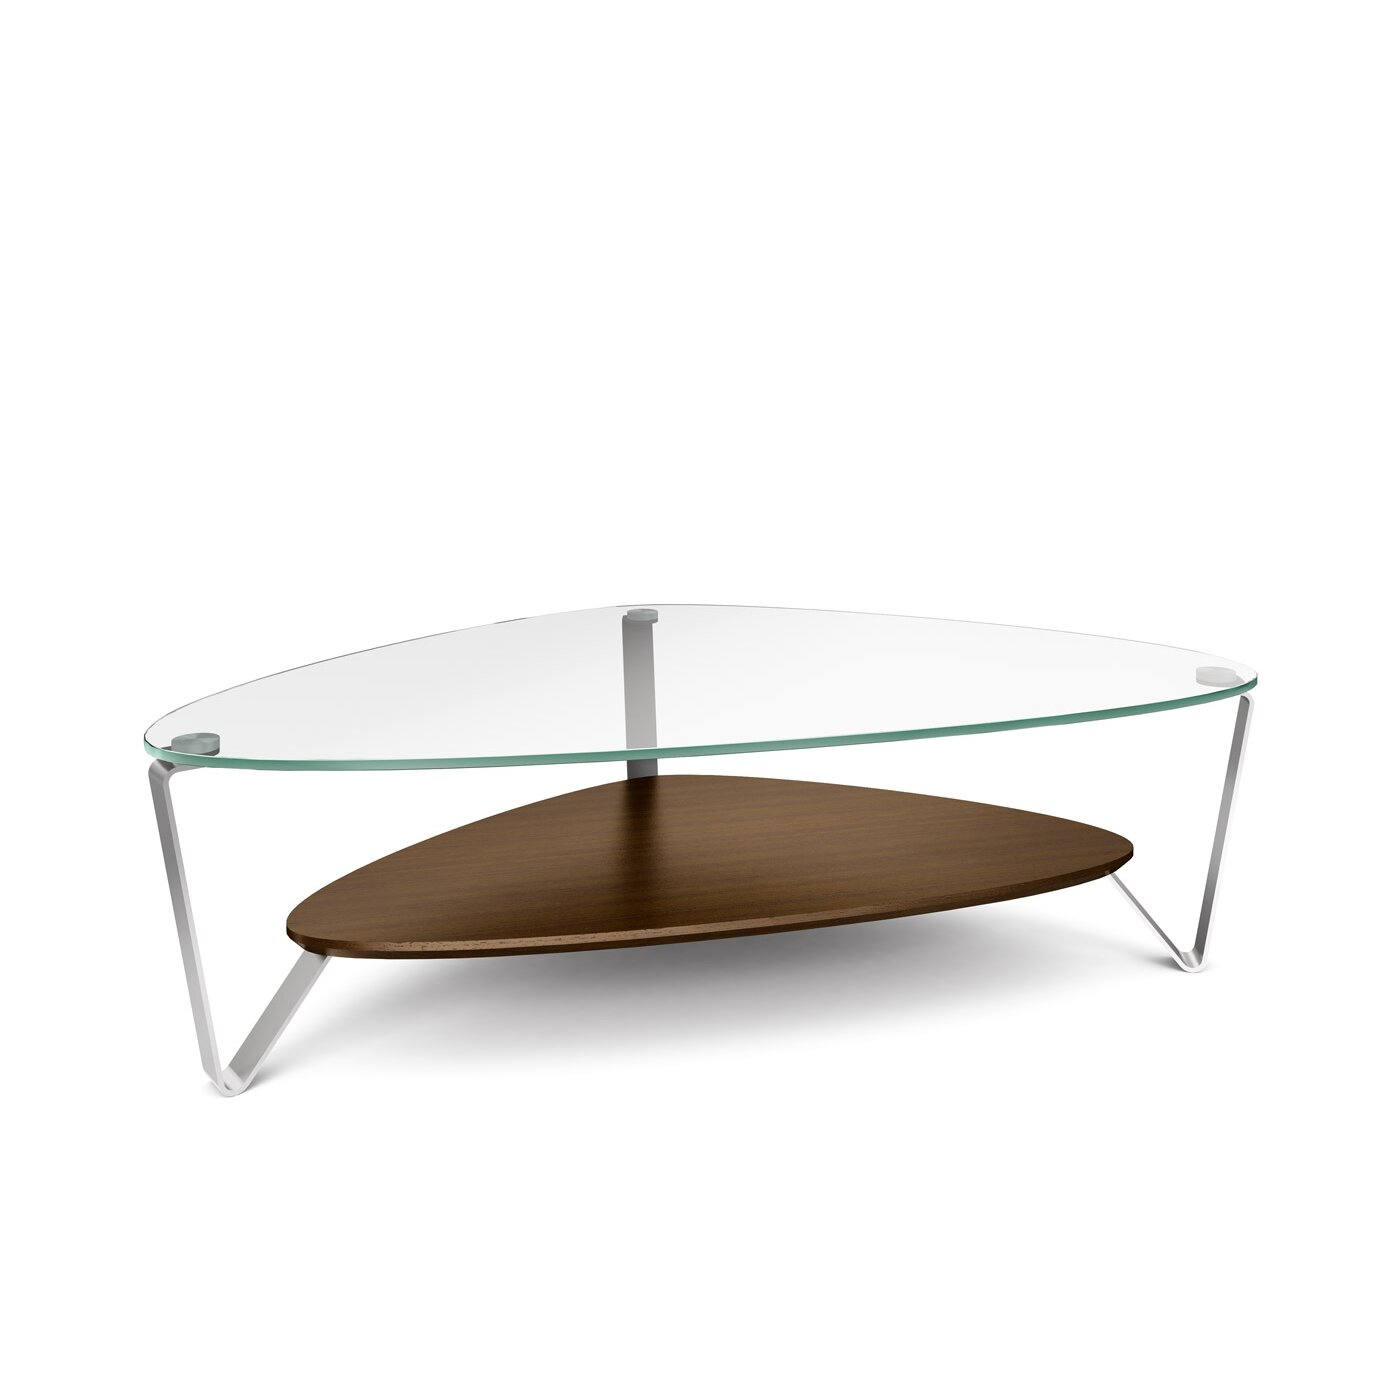 Odd shaped coffee tables excellent midcentury modern coffee tables youull love wayfair with odd for Table th odd